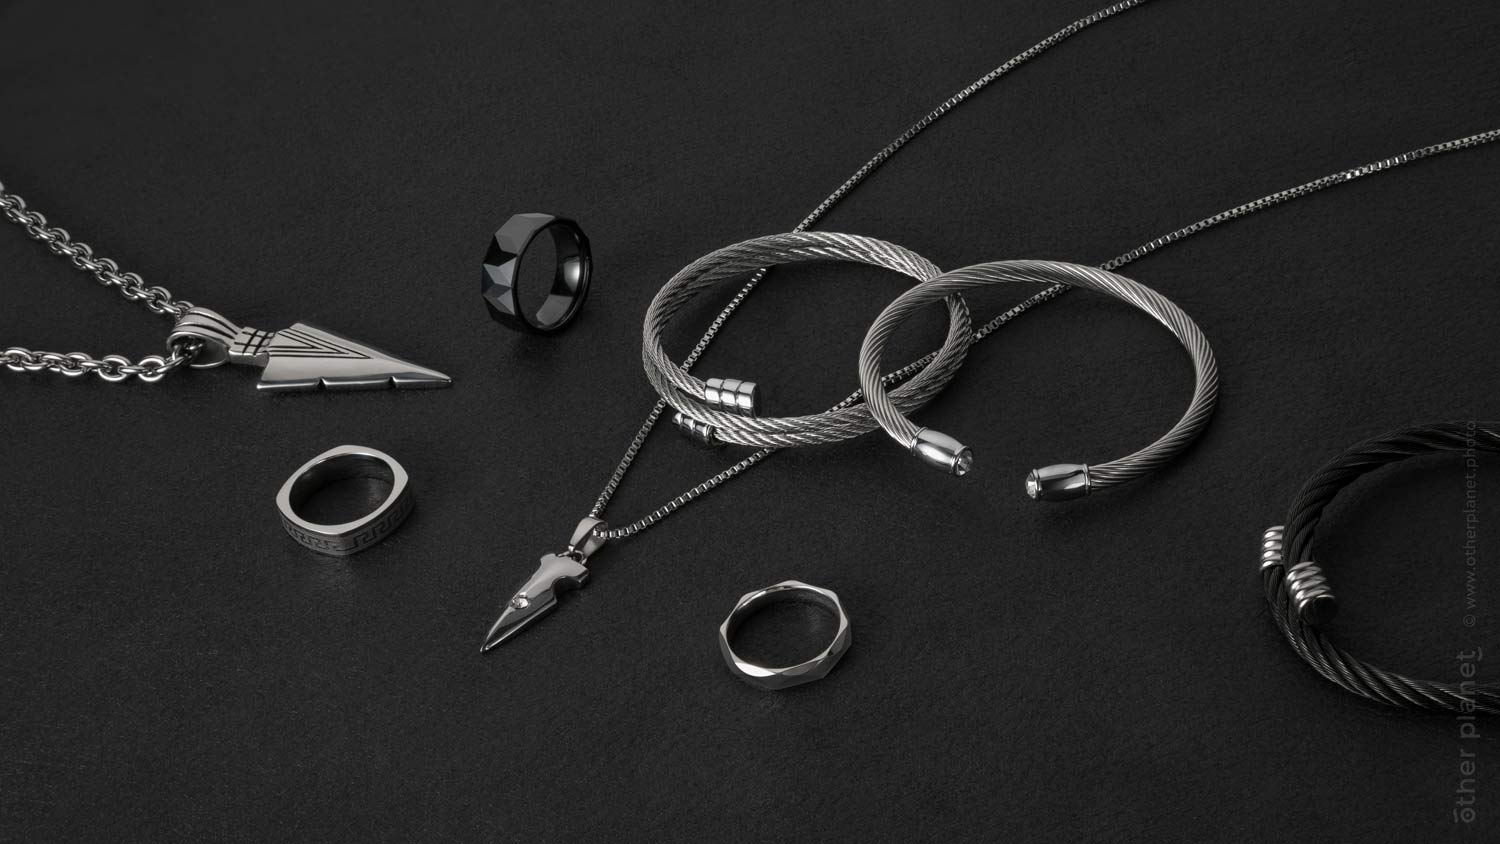 Jewelry for men collection arrangement on plain black background